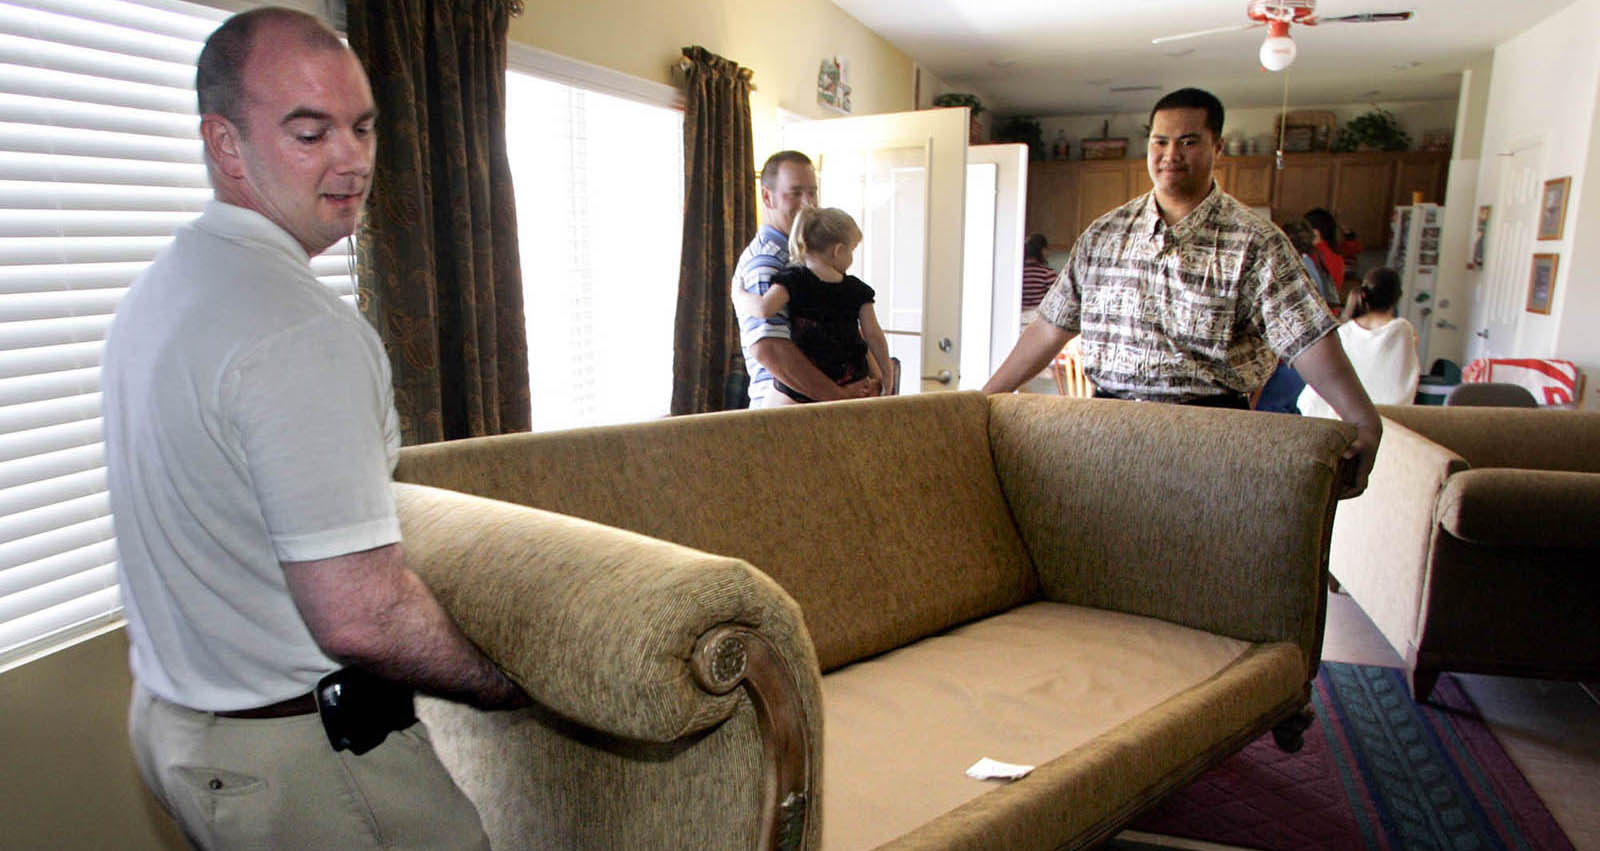 Discovery Church members Kirk Butler, left, and Vili Fetapai move furniture back into a living room after a Sunday service at their pastor's home January 23, 2005. The church is waiting for approval to move to a temporary industrial location. STEVE MARCUS / LAS VEGAS SUN